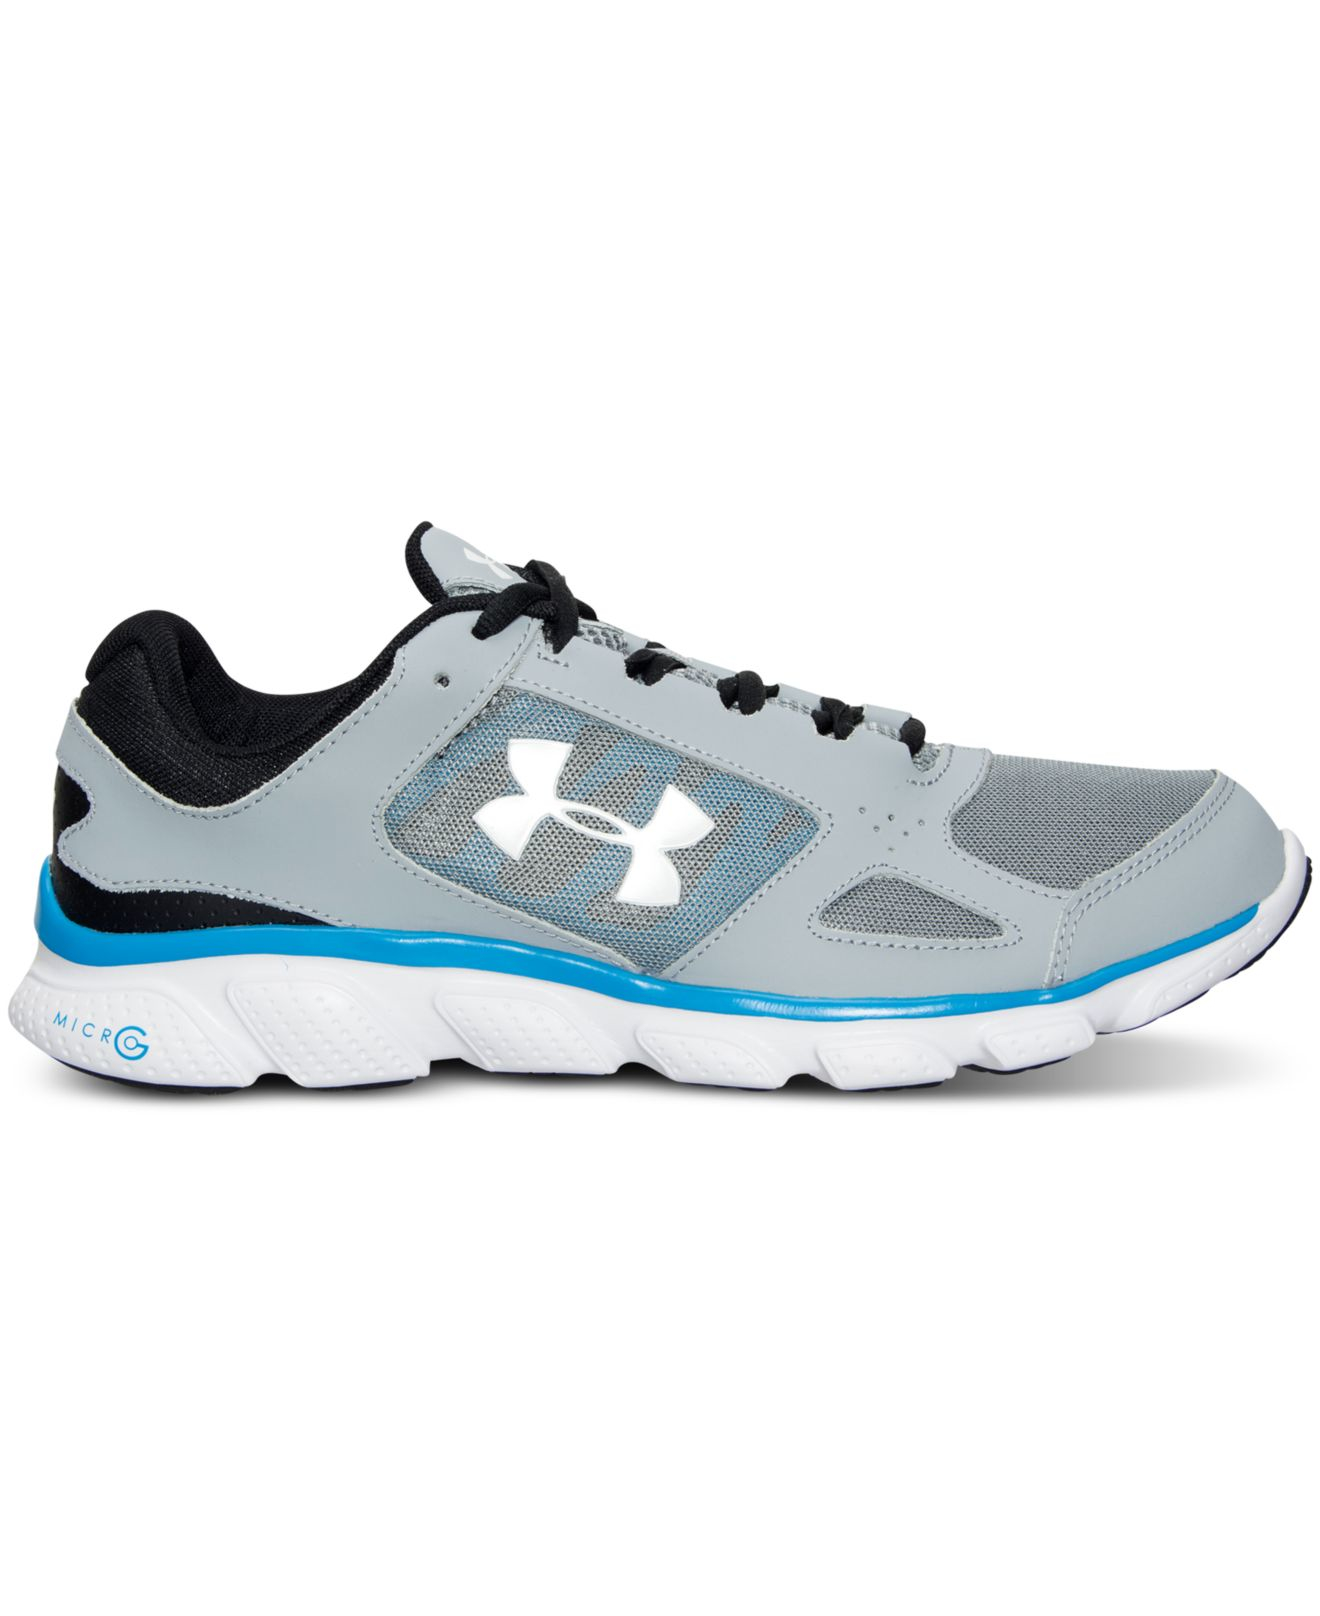 Lyst - Under Armour Men s Micro G Assert V Running Sneakers From ... 114c9257f14